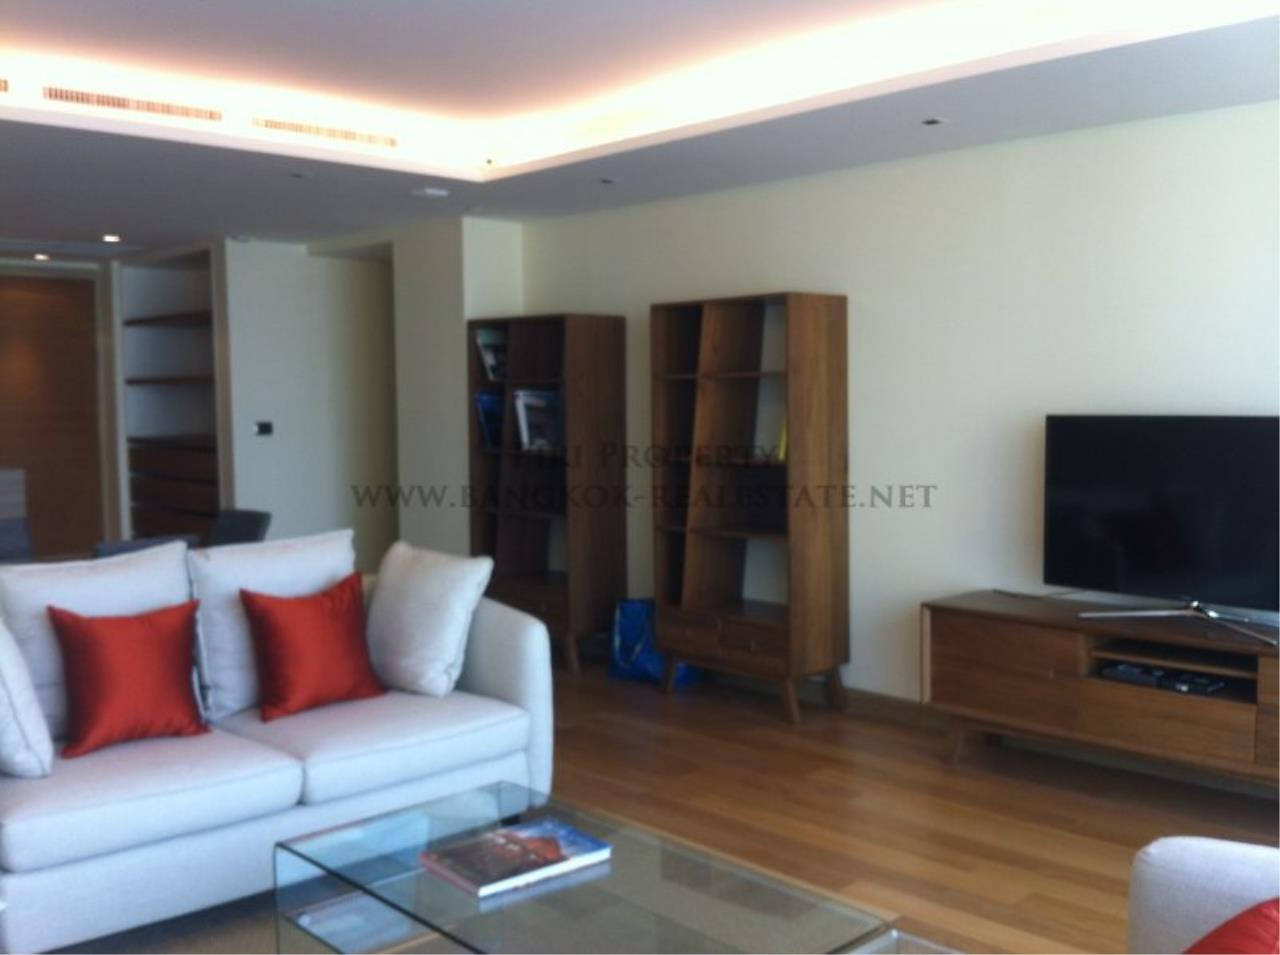 Piri Property Agency's Spacious Condo Unit with 3 Bedrooms near Ari - 174 SQM 2